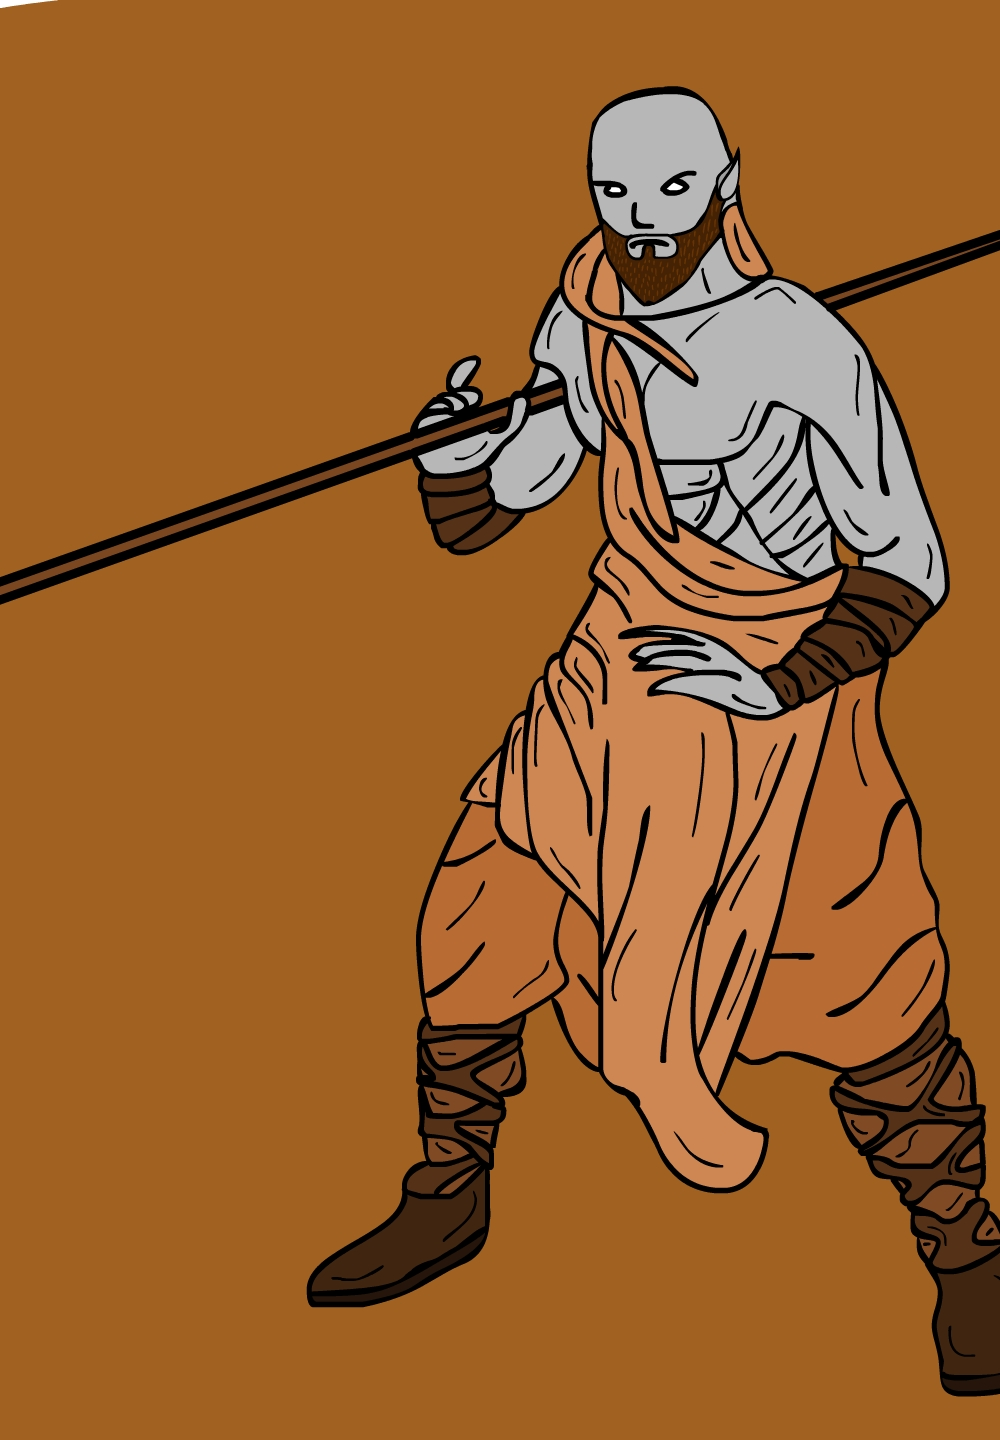 Dungeons & Dragons clipart monk Rinn Dungeons WoodElf Rinn Dragons